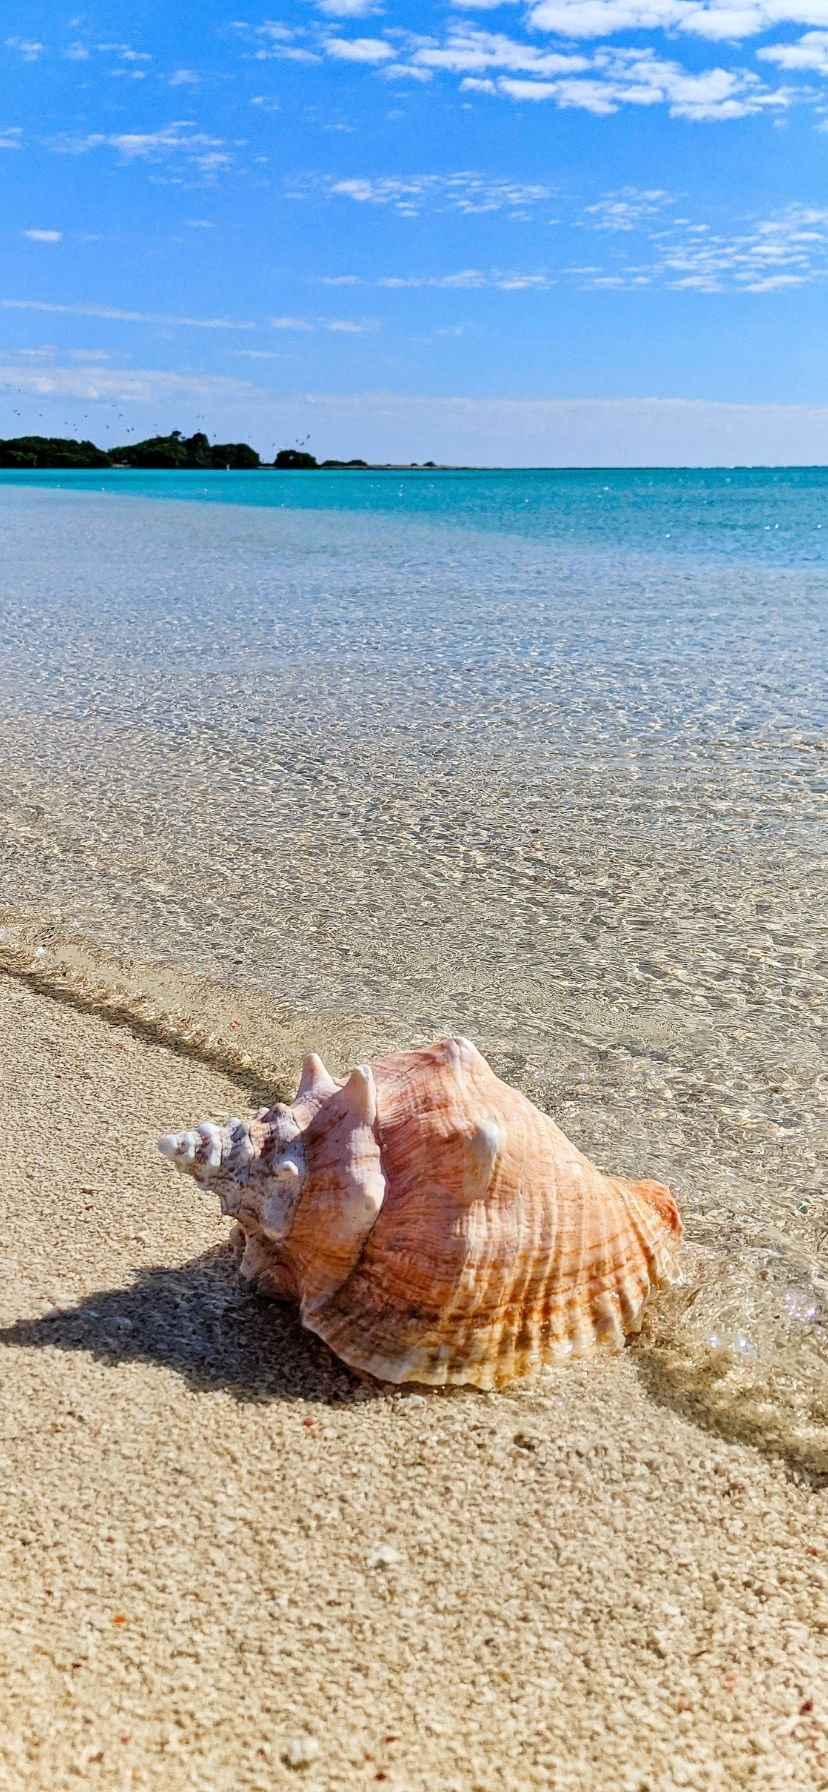 Queen Conch shell on beach at Dry Tortugas National Park, Florida Keys